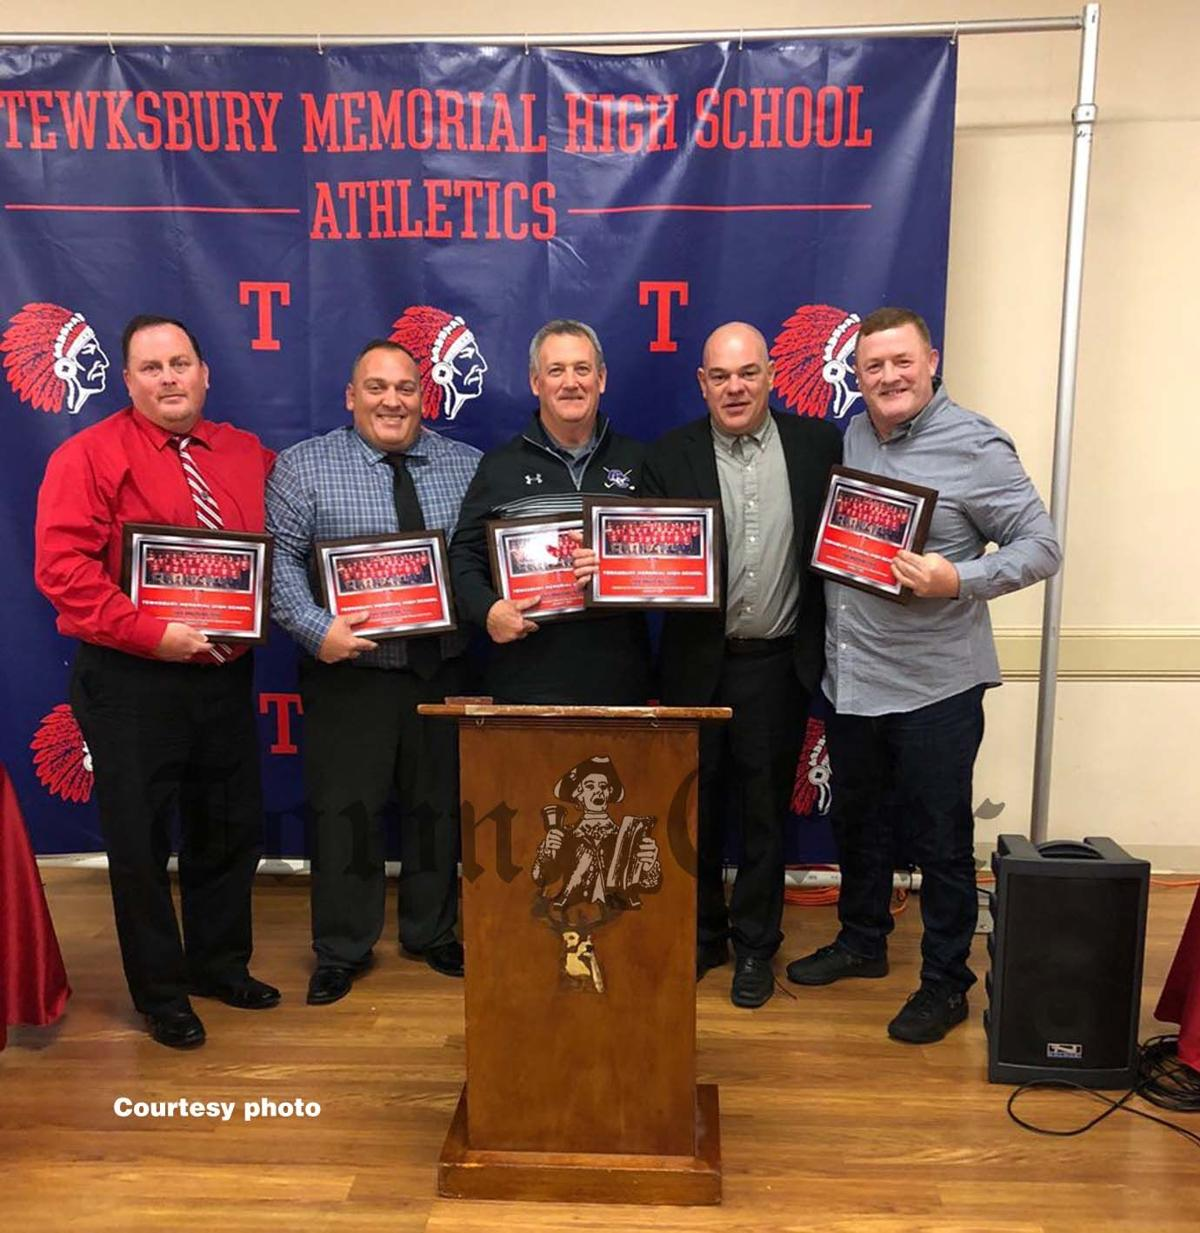 Members of the 1989 TMHS State Champion Wrestling Team